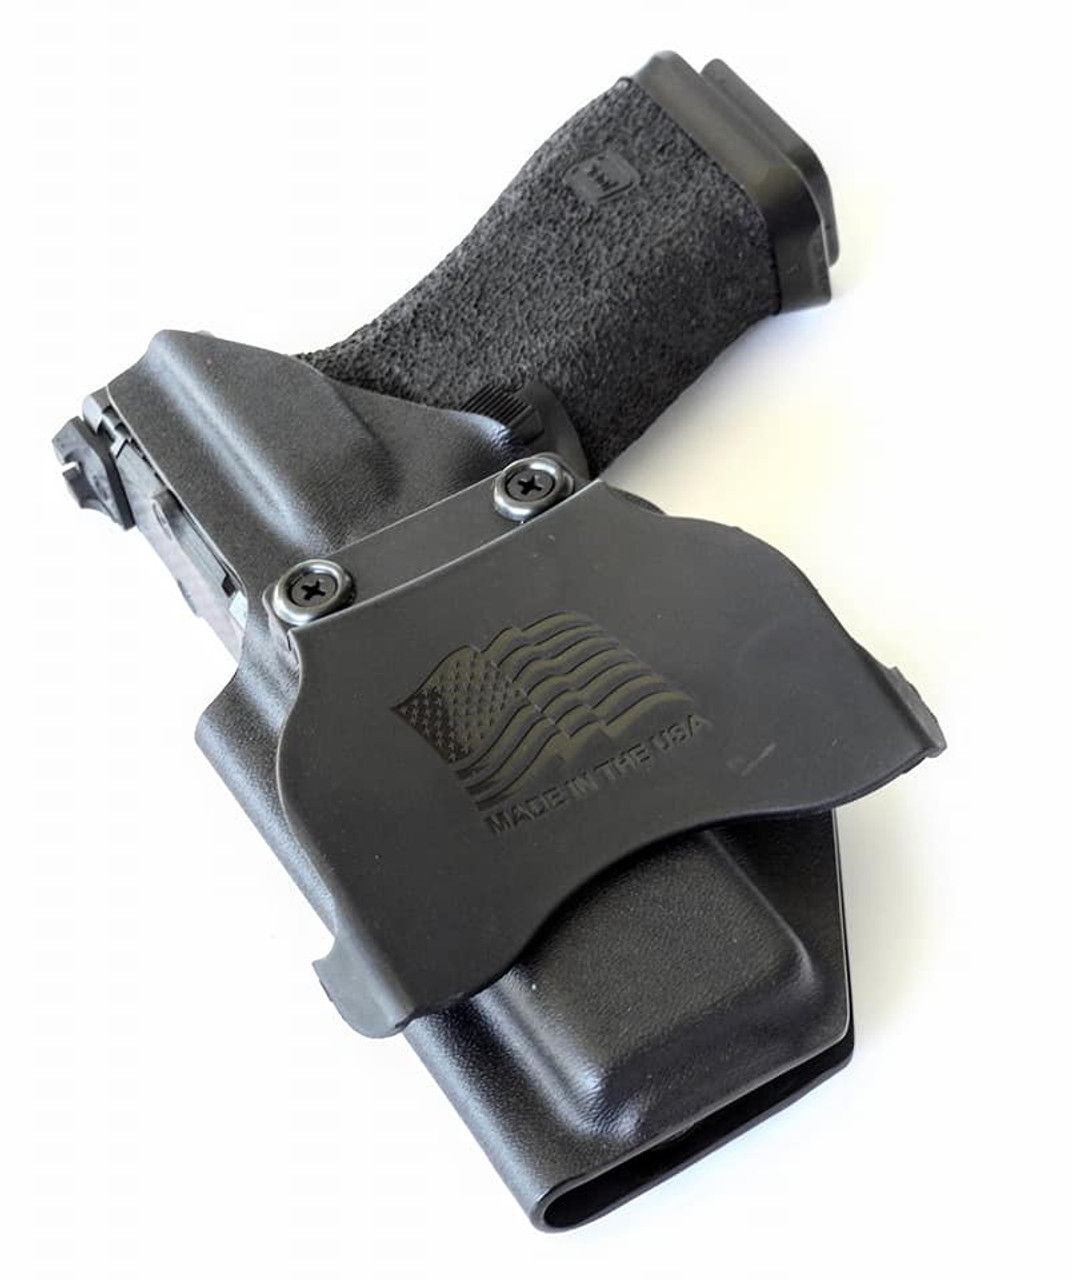 Glock 19 Outside Waistband Kydex Holster